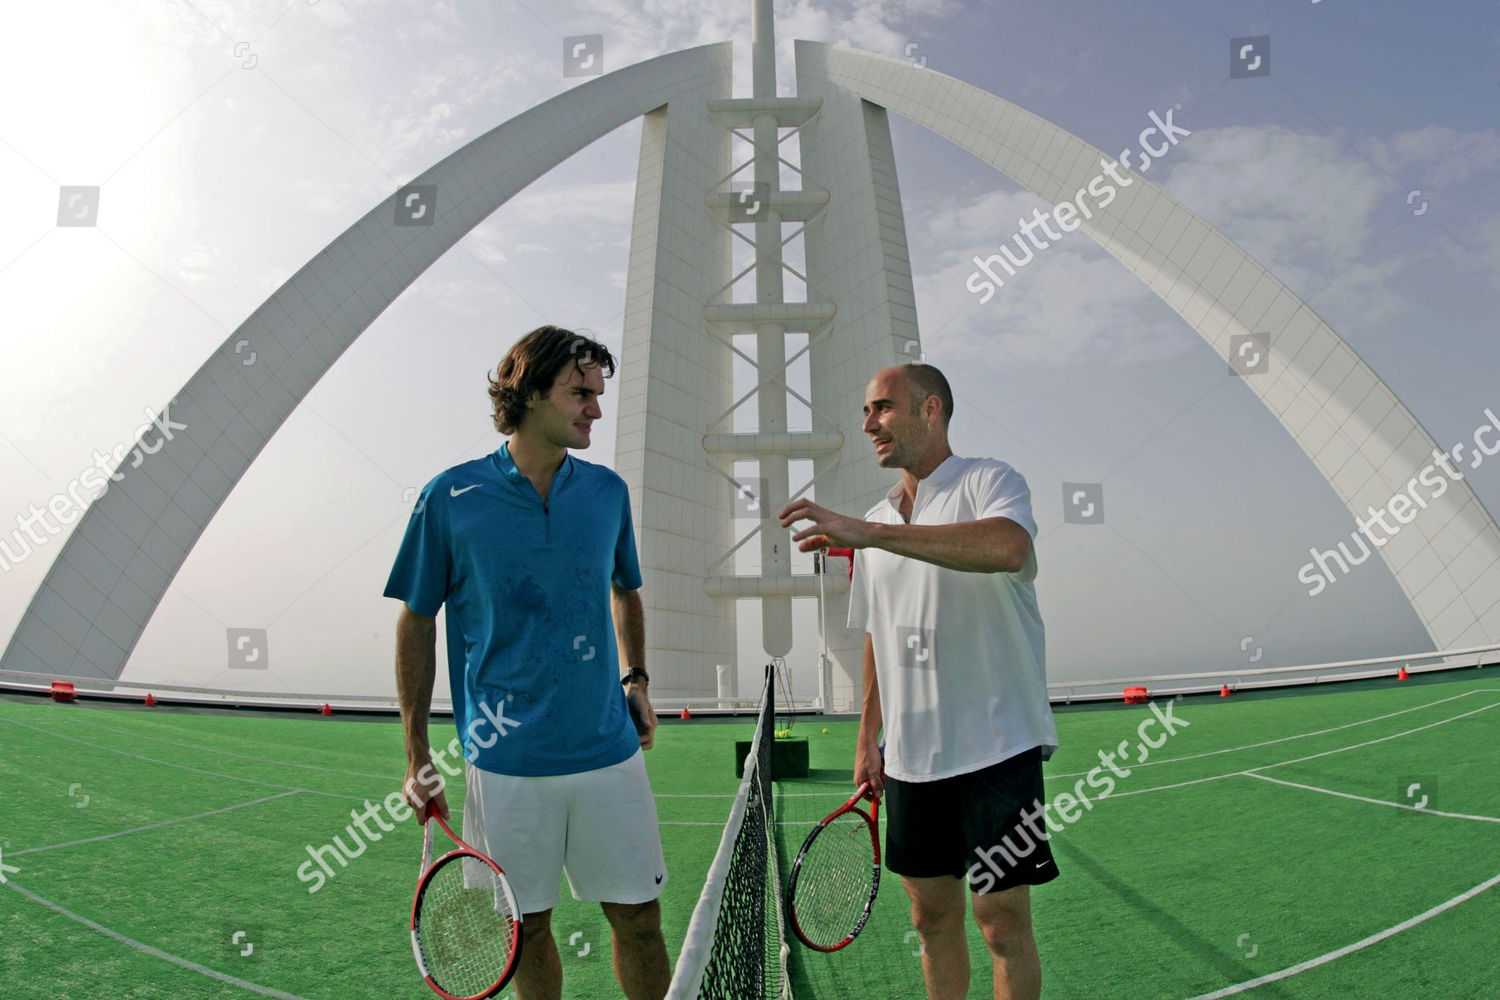 Roger Federer Andre Agassi Court Laid Overtop Editorial Stock Photo